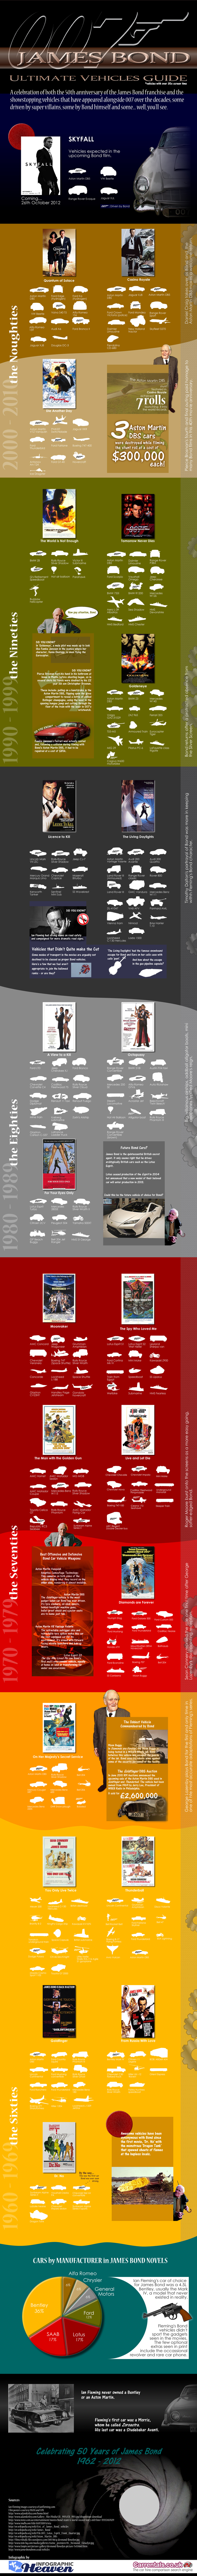 James Bond Ultimate Vehicles Guide